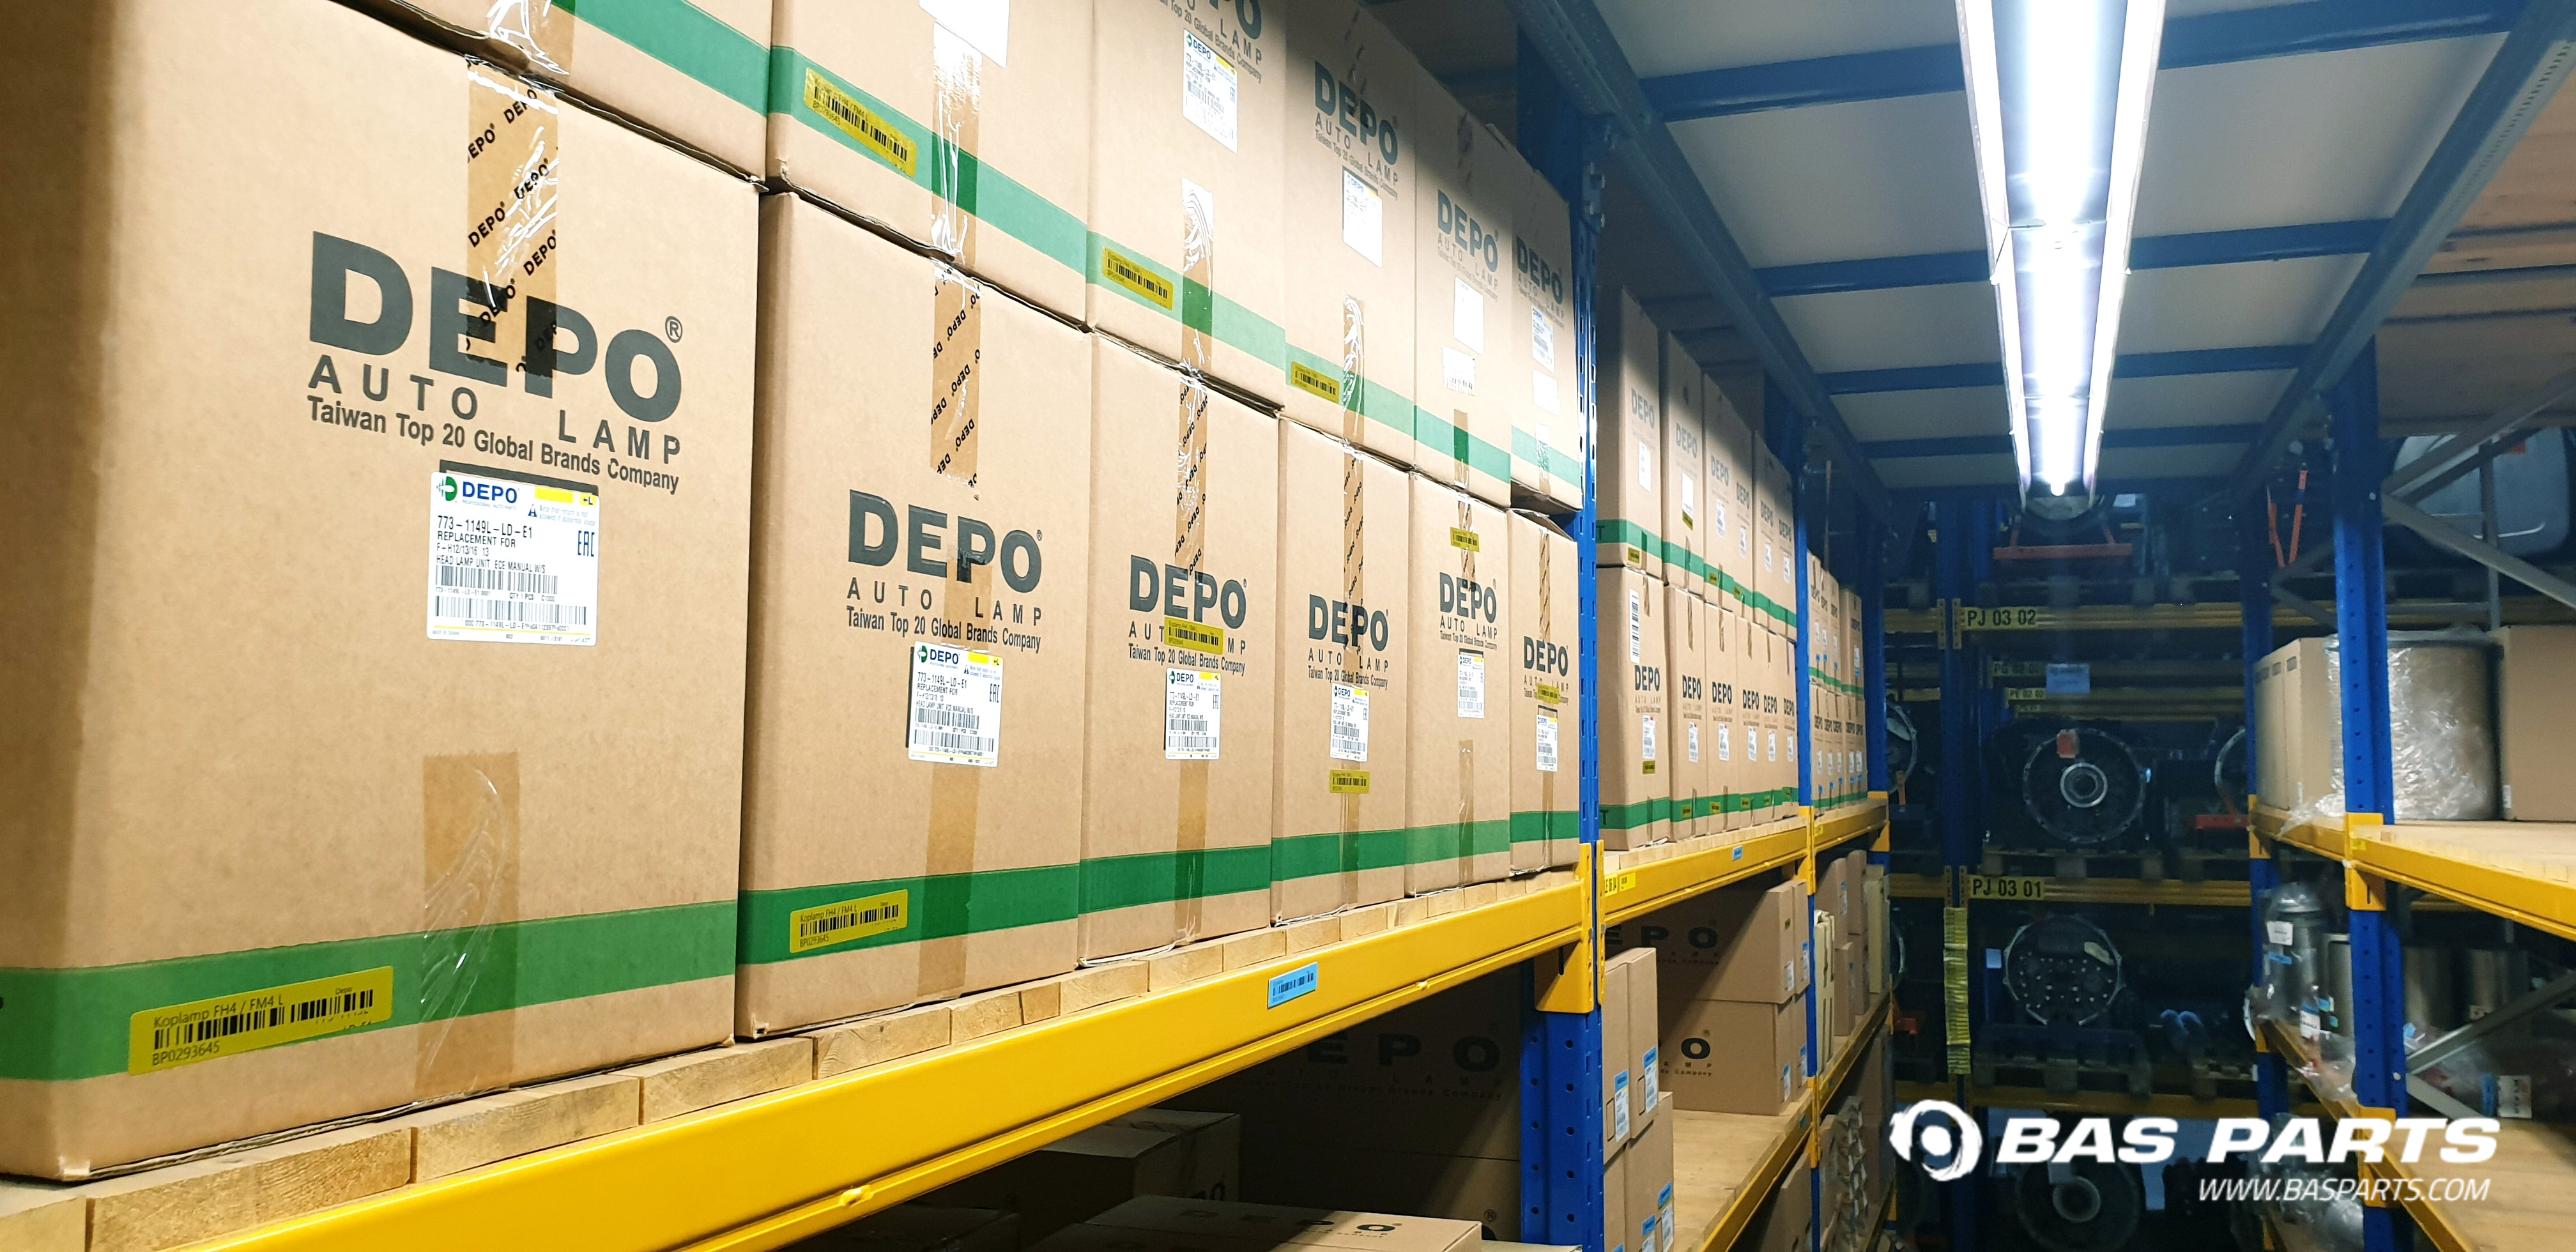 DEPO headlights in stock